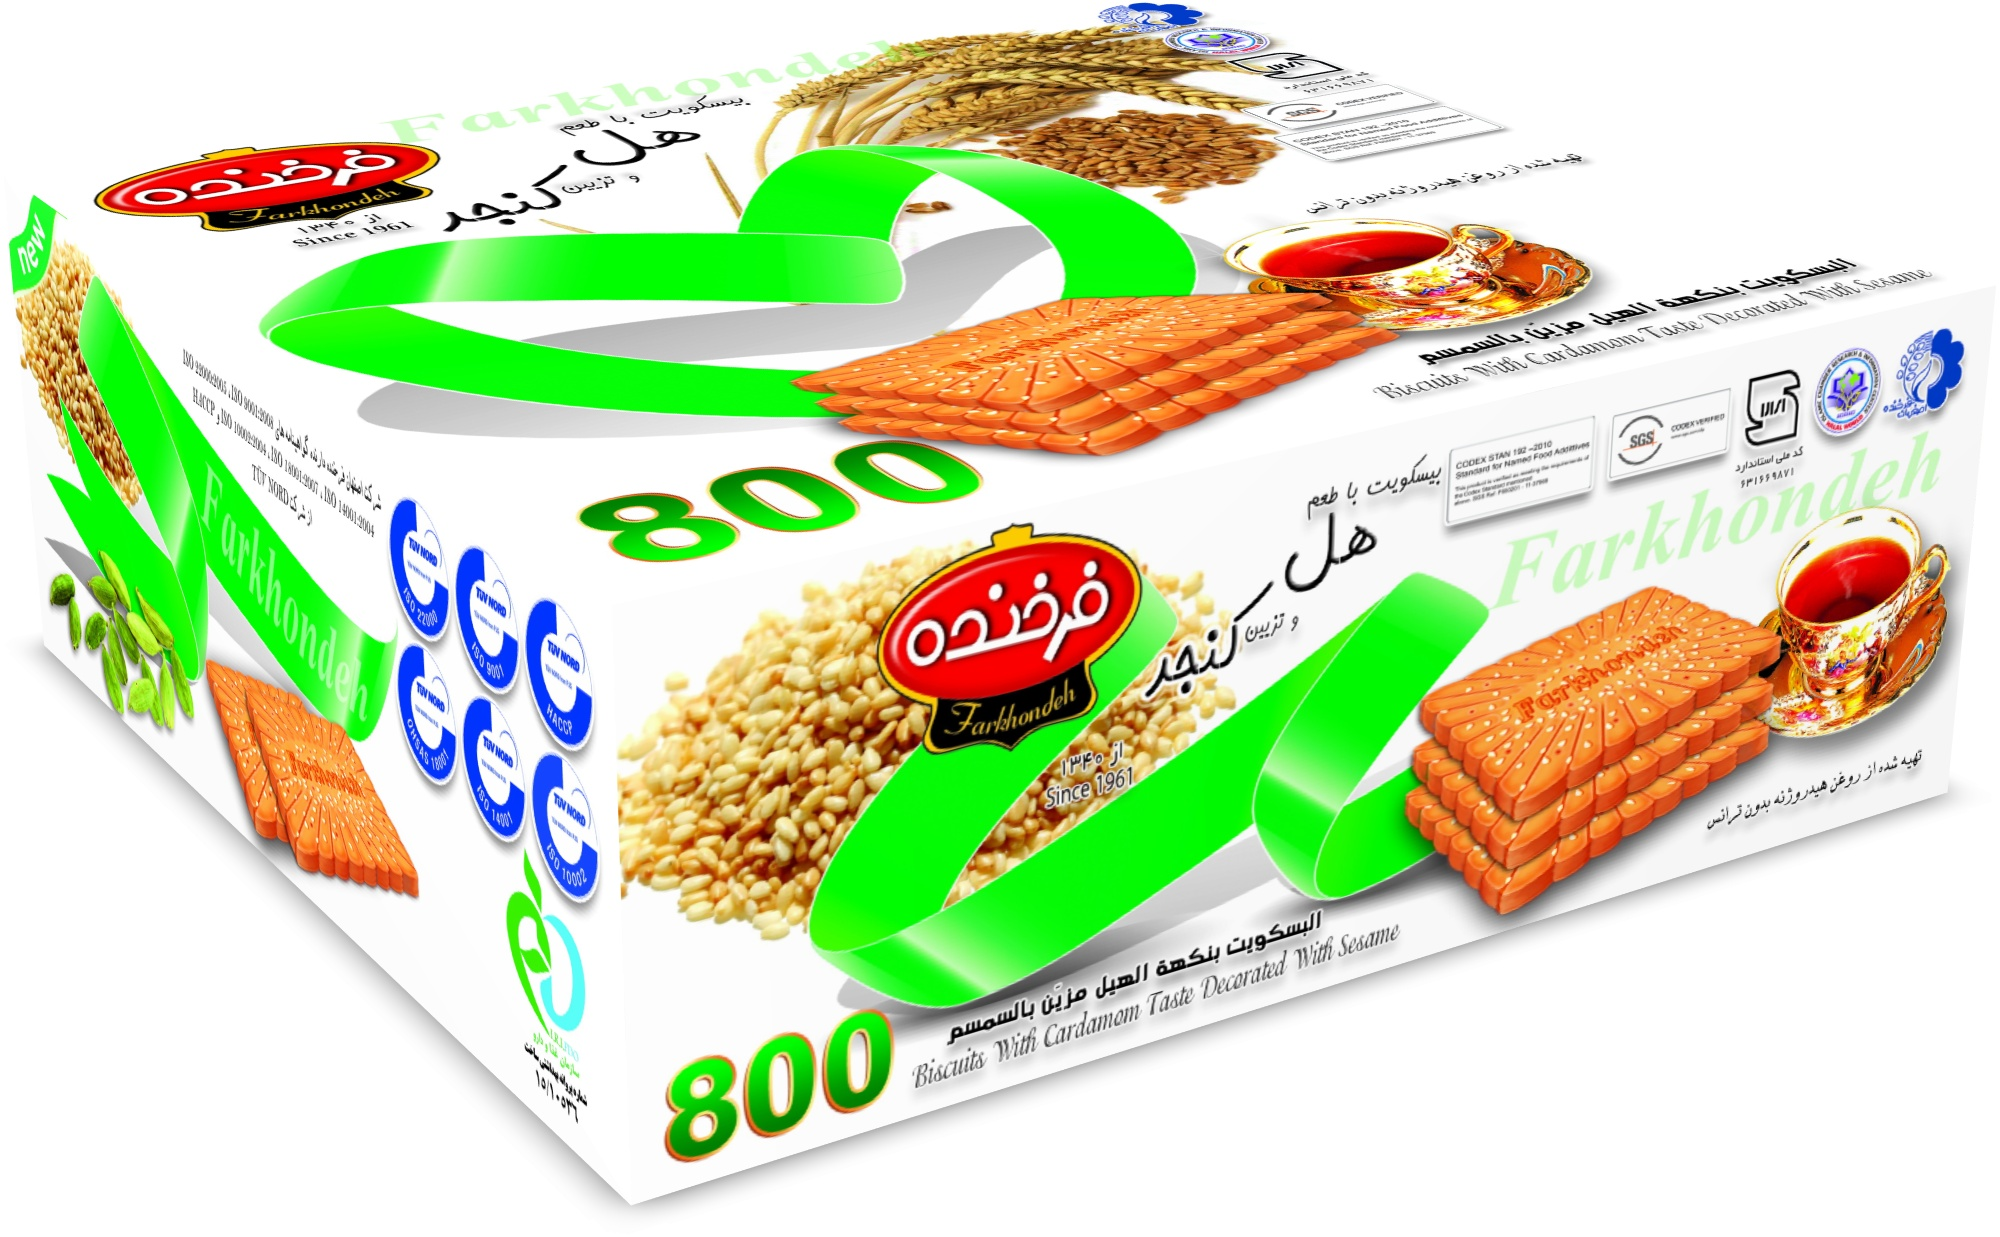 Biscuit with Cardamom Taste Topped with Sesame Model 800